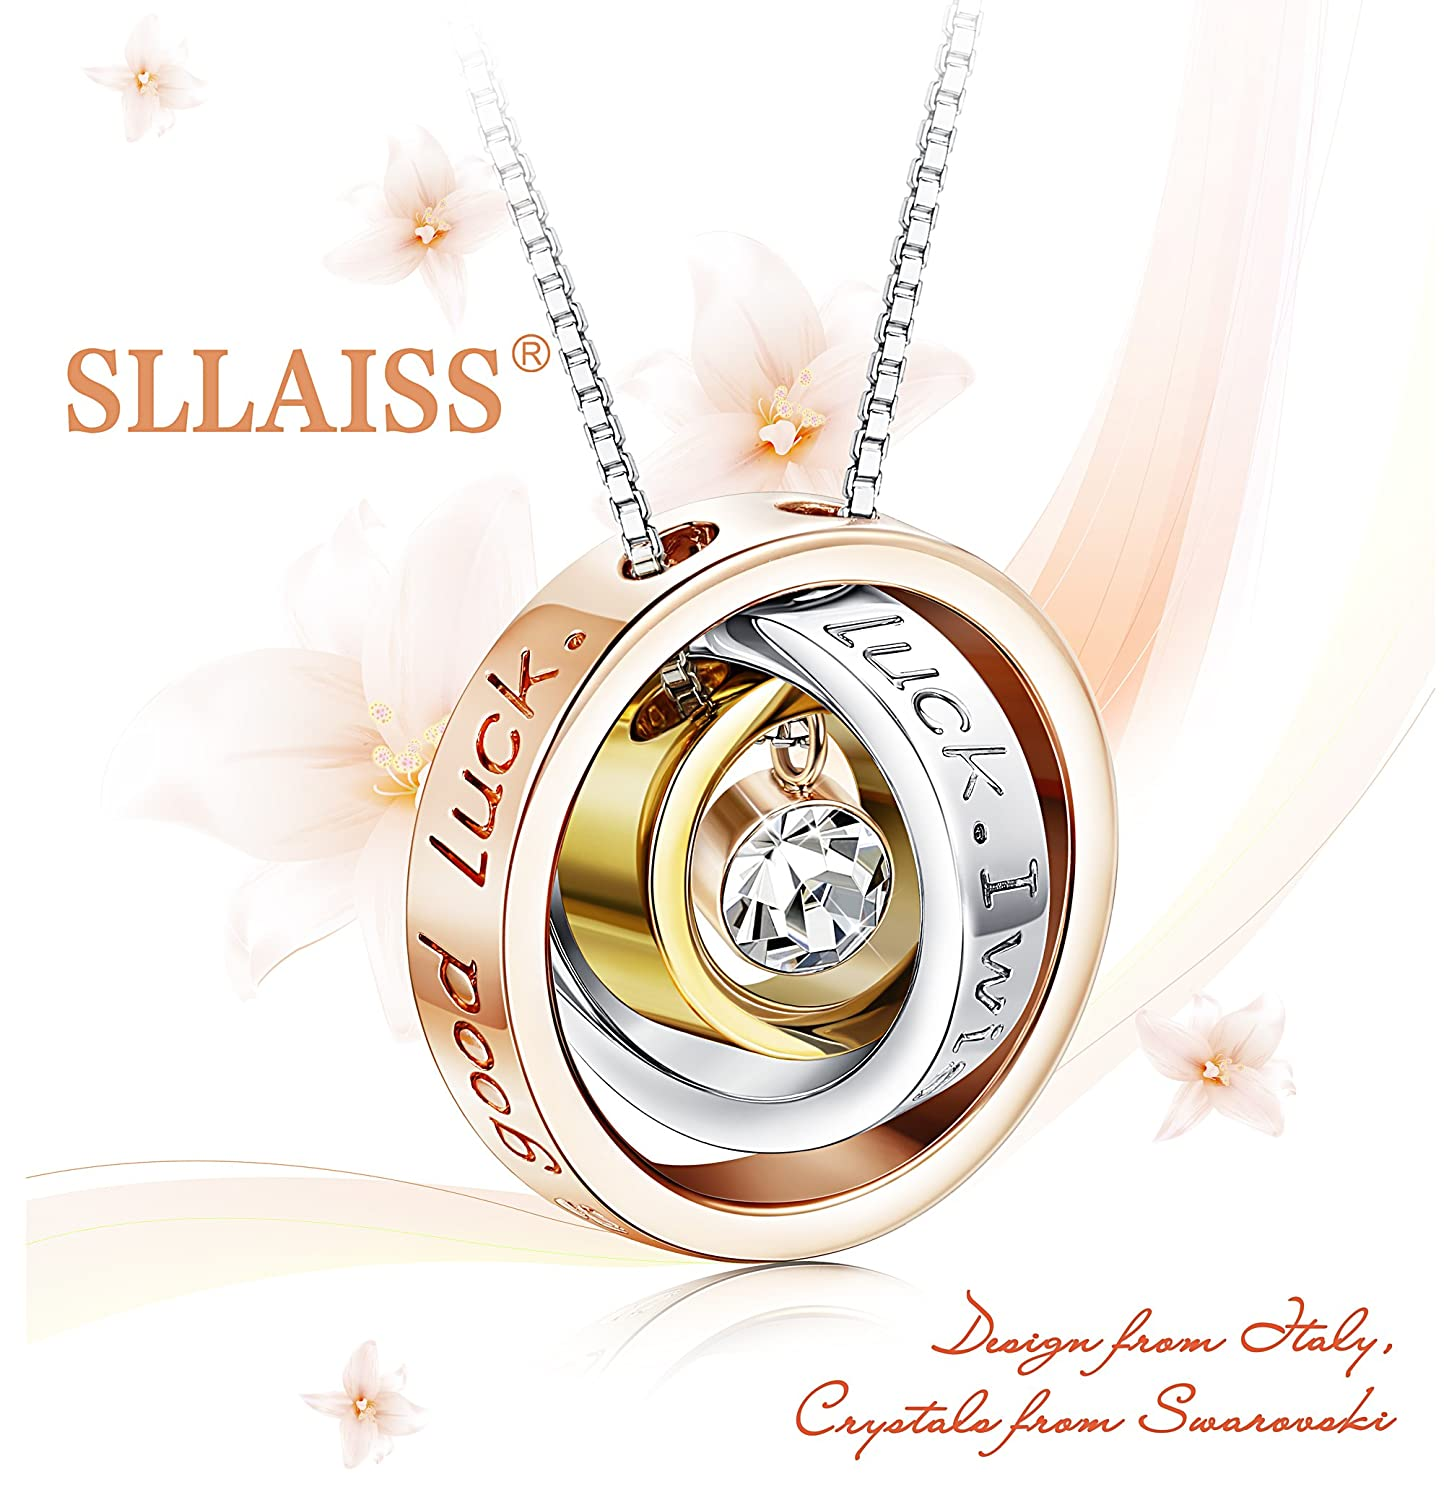 f01264542 Sllaiss Ring Necklace Made with Swarovski Crystals,Engraved I wish you ll  have a good luck Rose Gold Plated Alloy Pendant Necklaces Jewelry Gift  [GIFT ...